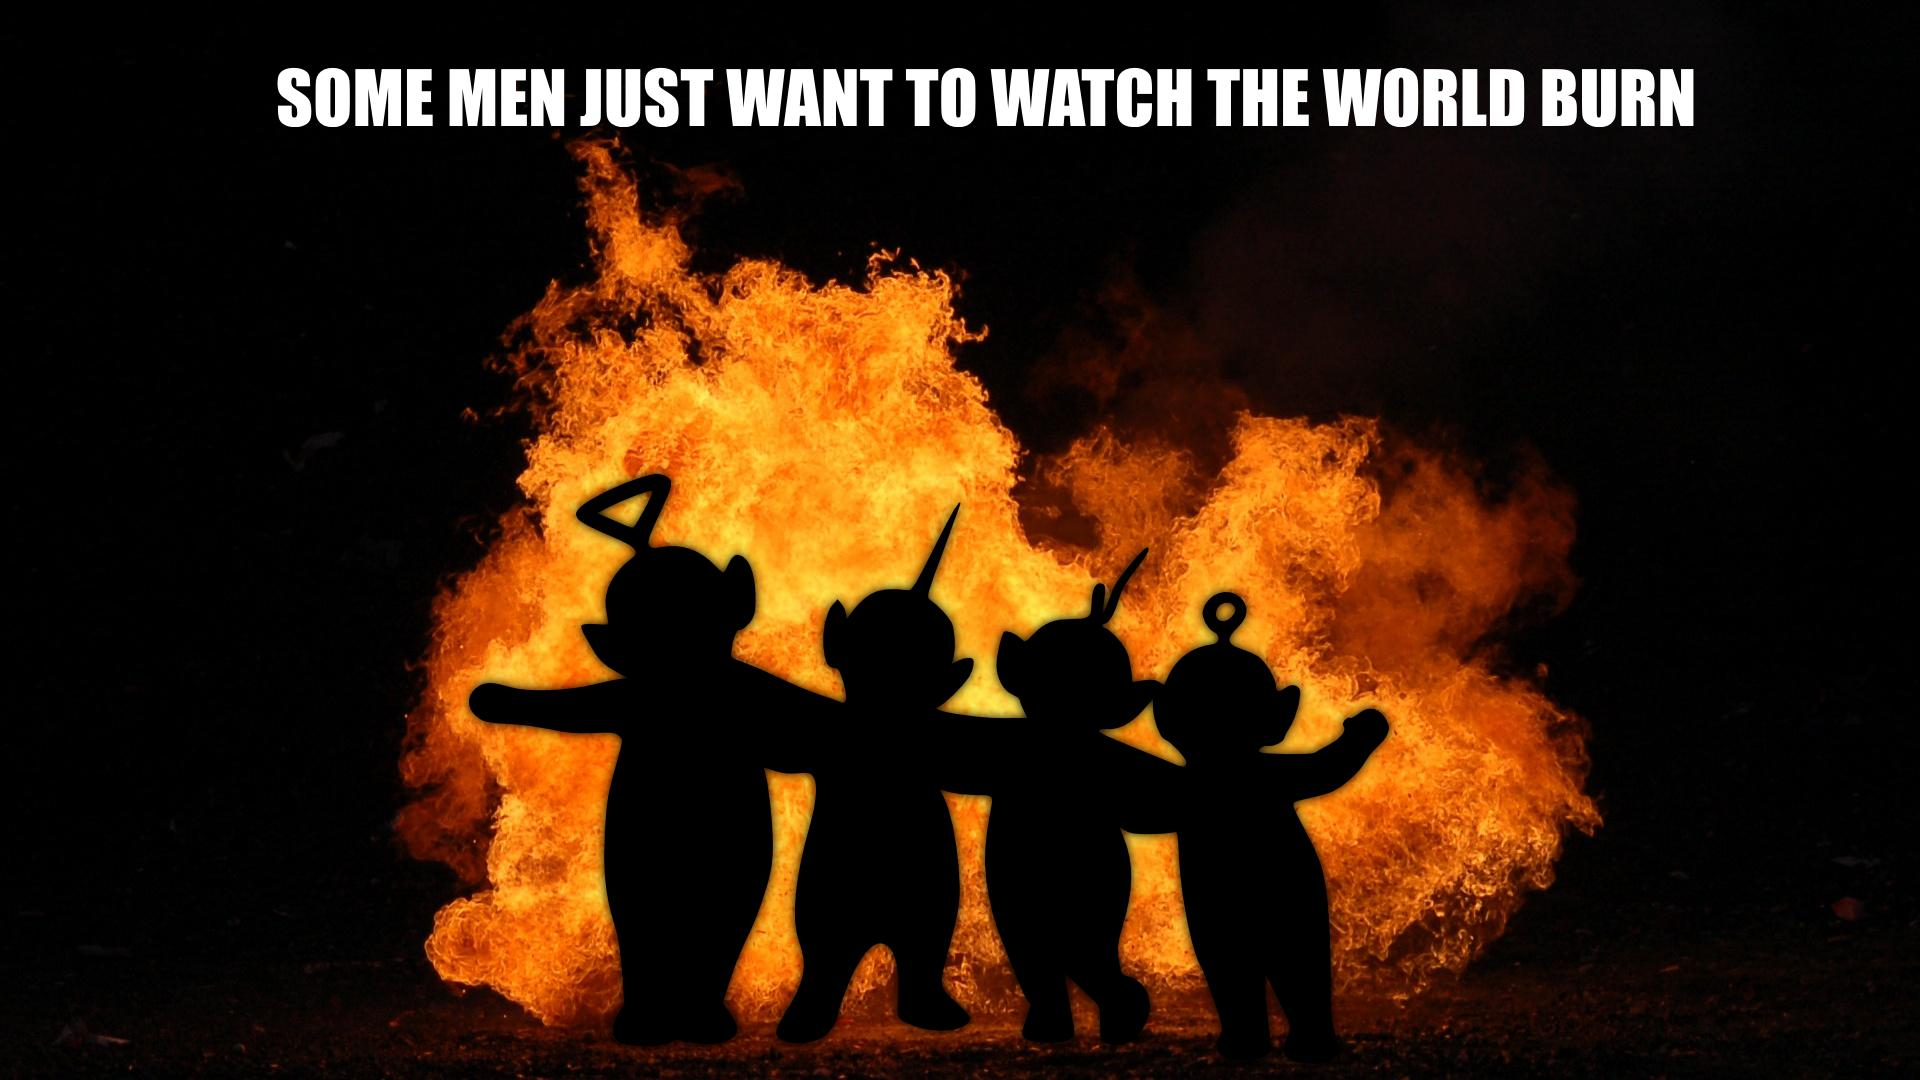 http://i1.kym-cdn.com/photos/images/original/000/189/854/some-men-just-want-to-watch-the-world-burn.jpg